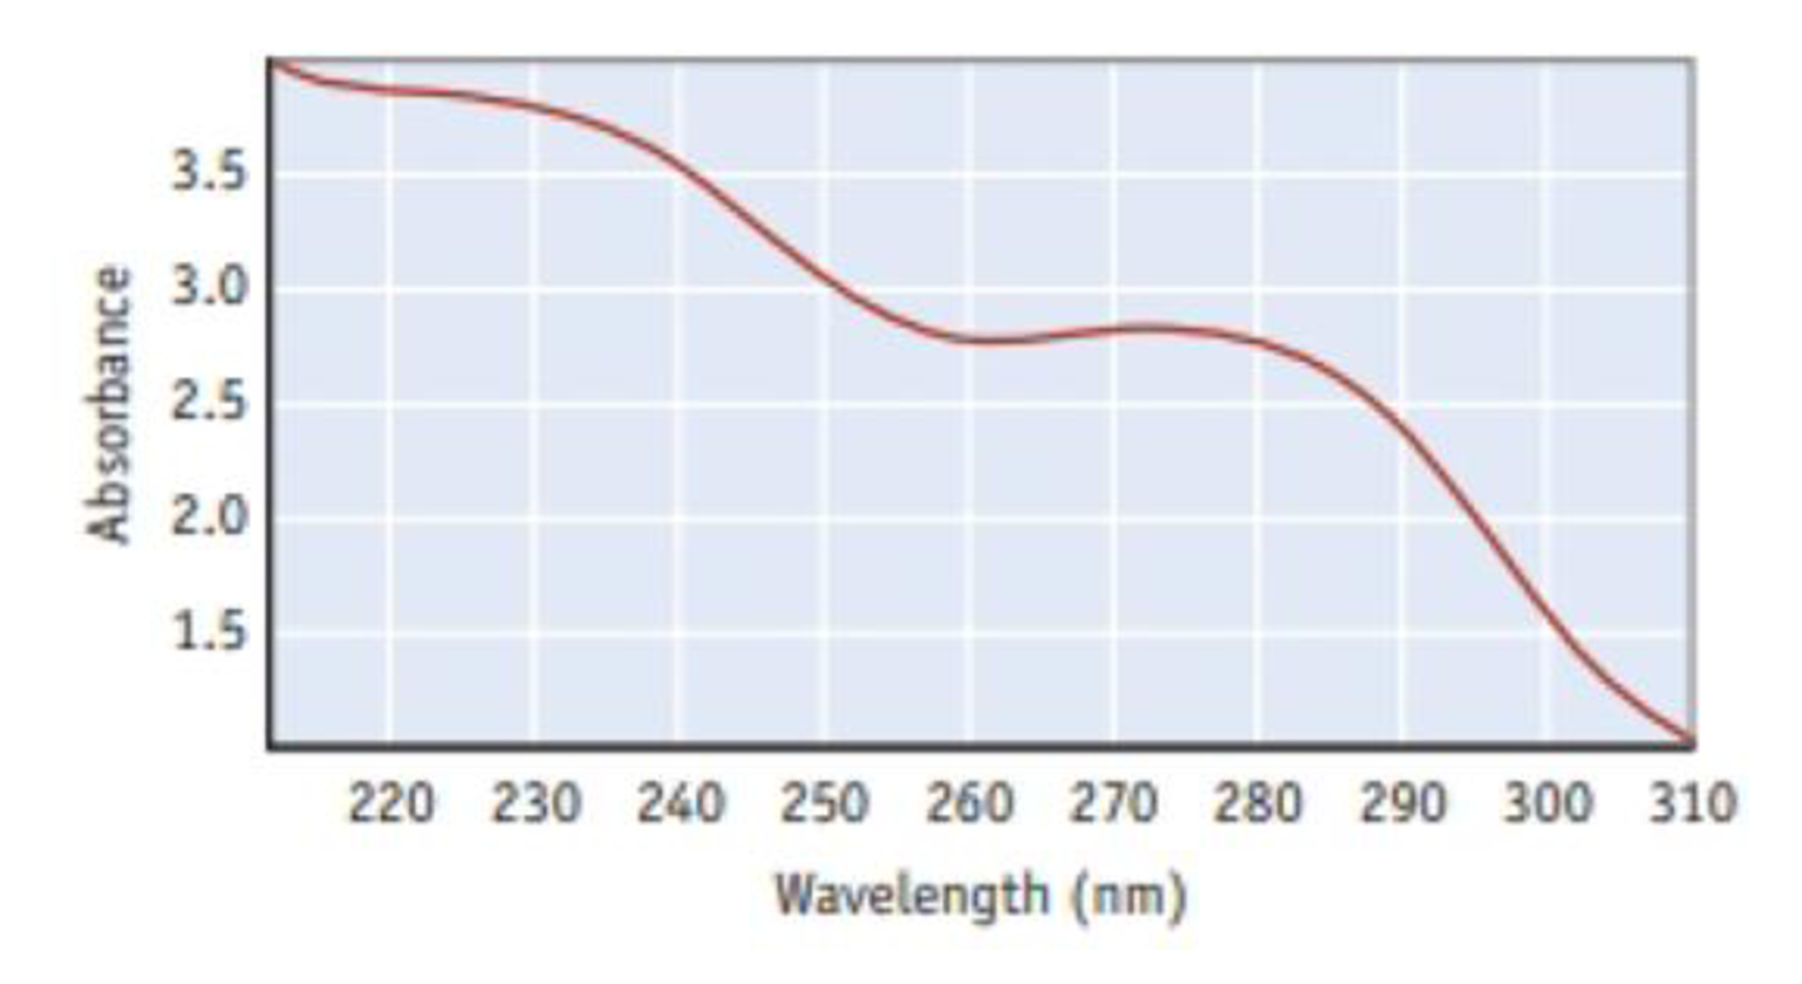 Chapter 6, Problem 72IL, The spectrum shown here is for aspirin. The vertical axis is the amount of light absorbed, and the